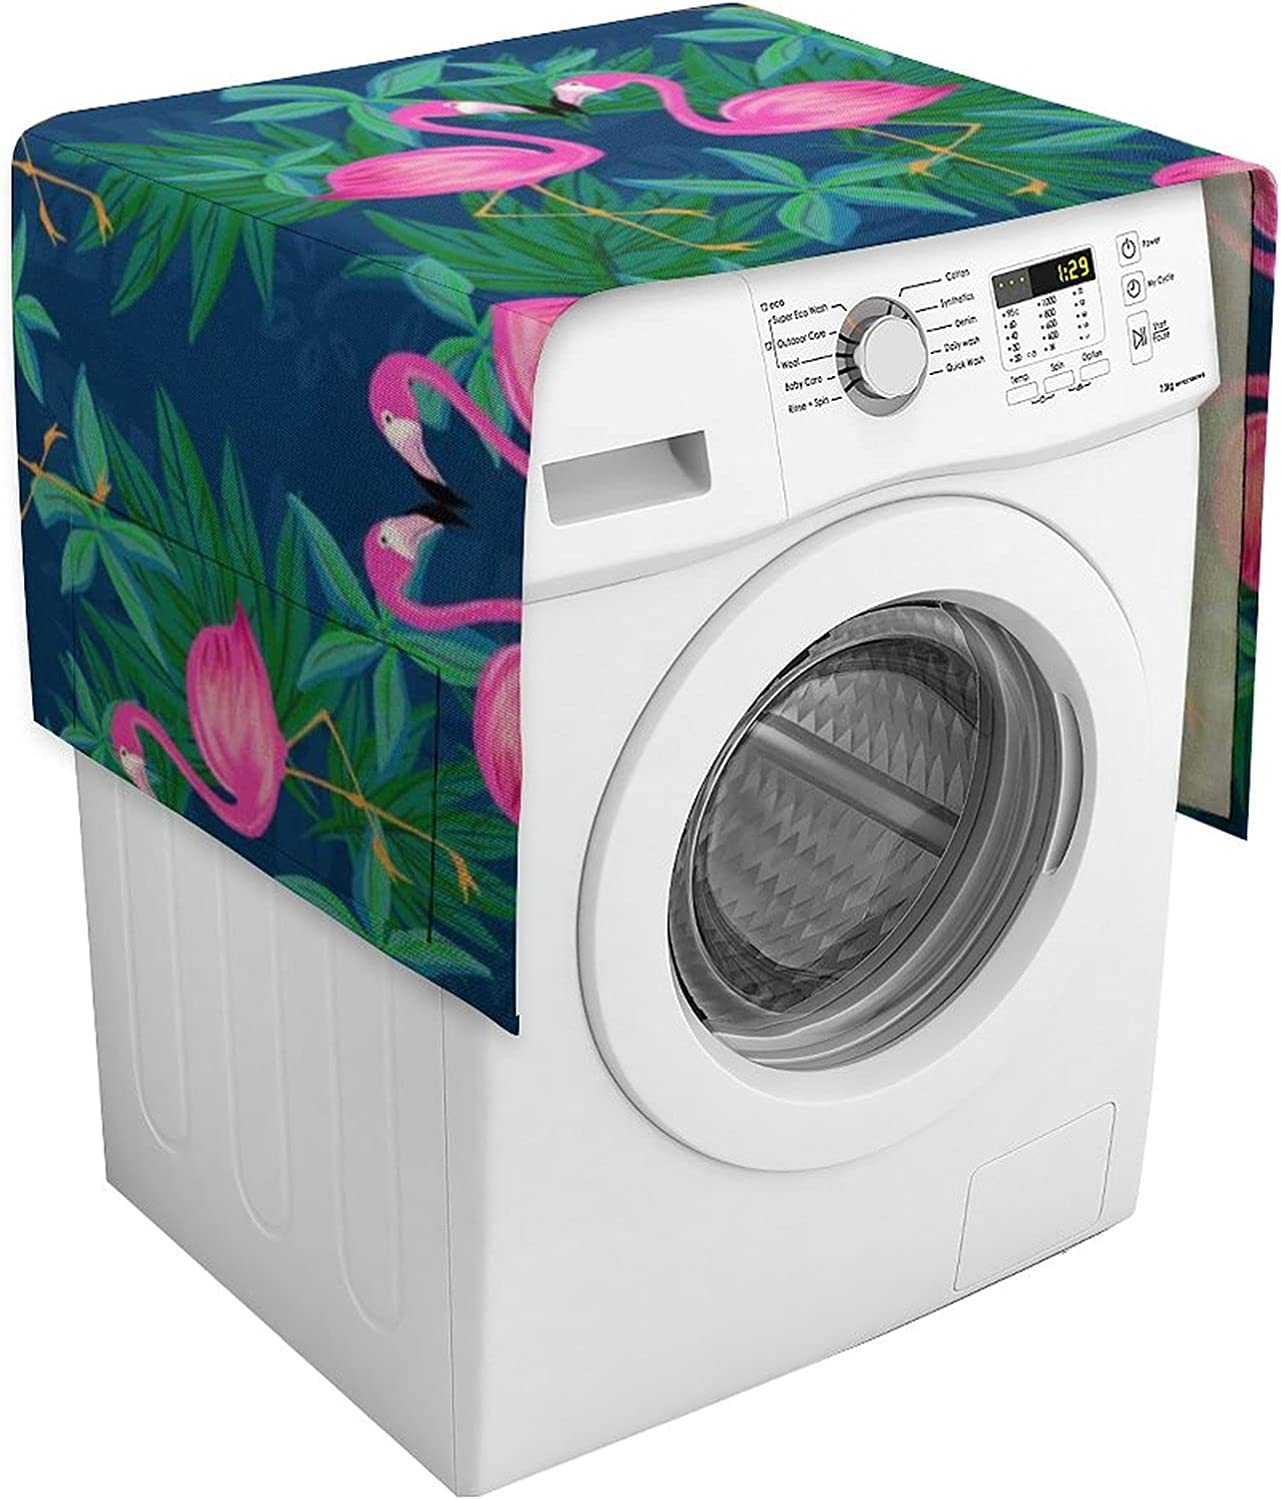 Multi-Purpose latest Washing Machine Covers Washer Protector Appliance Limited time cheap sale